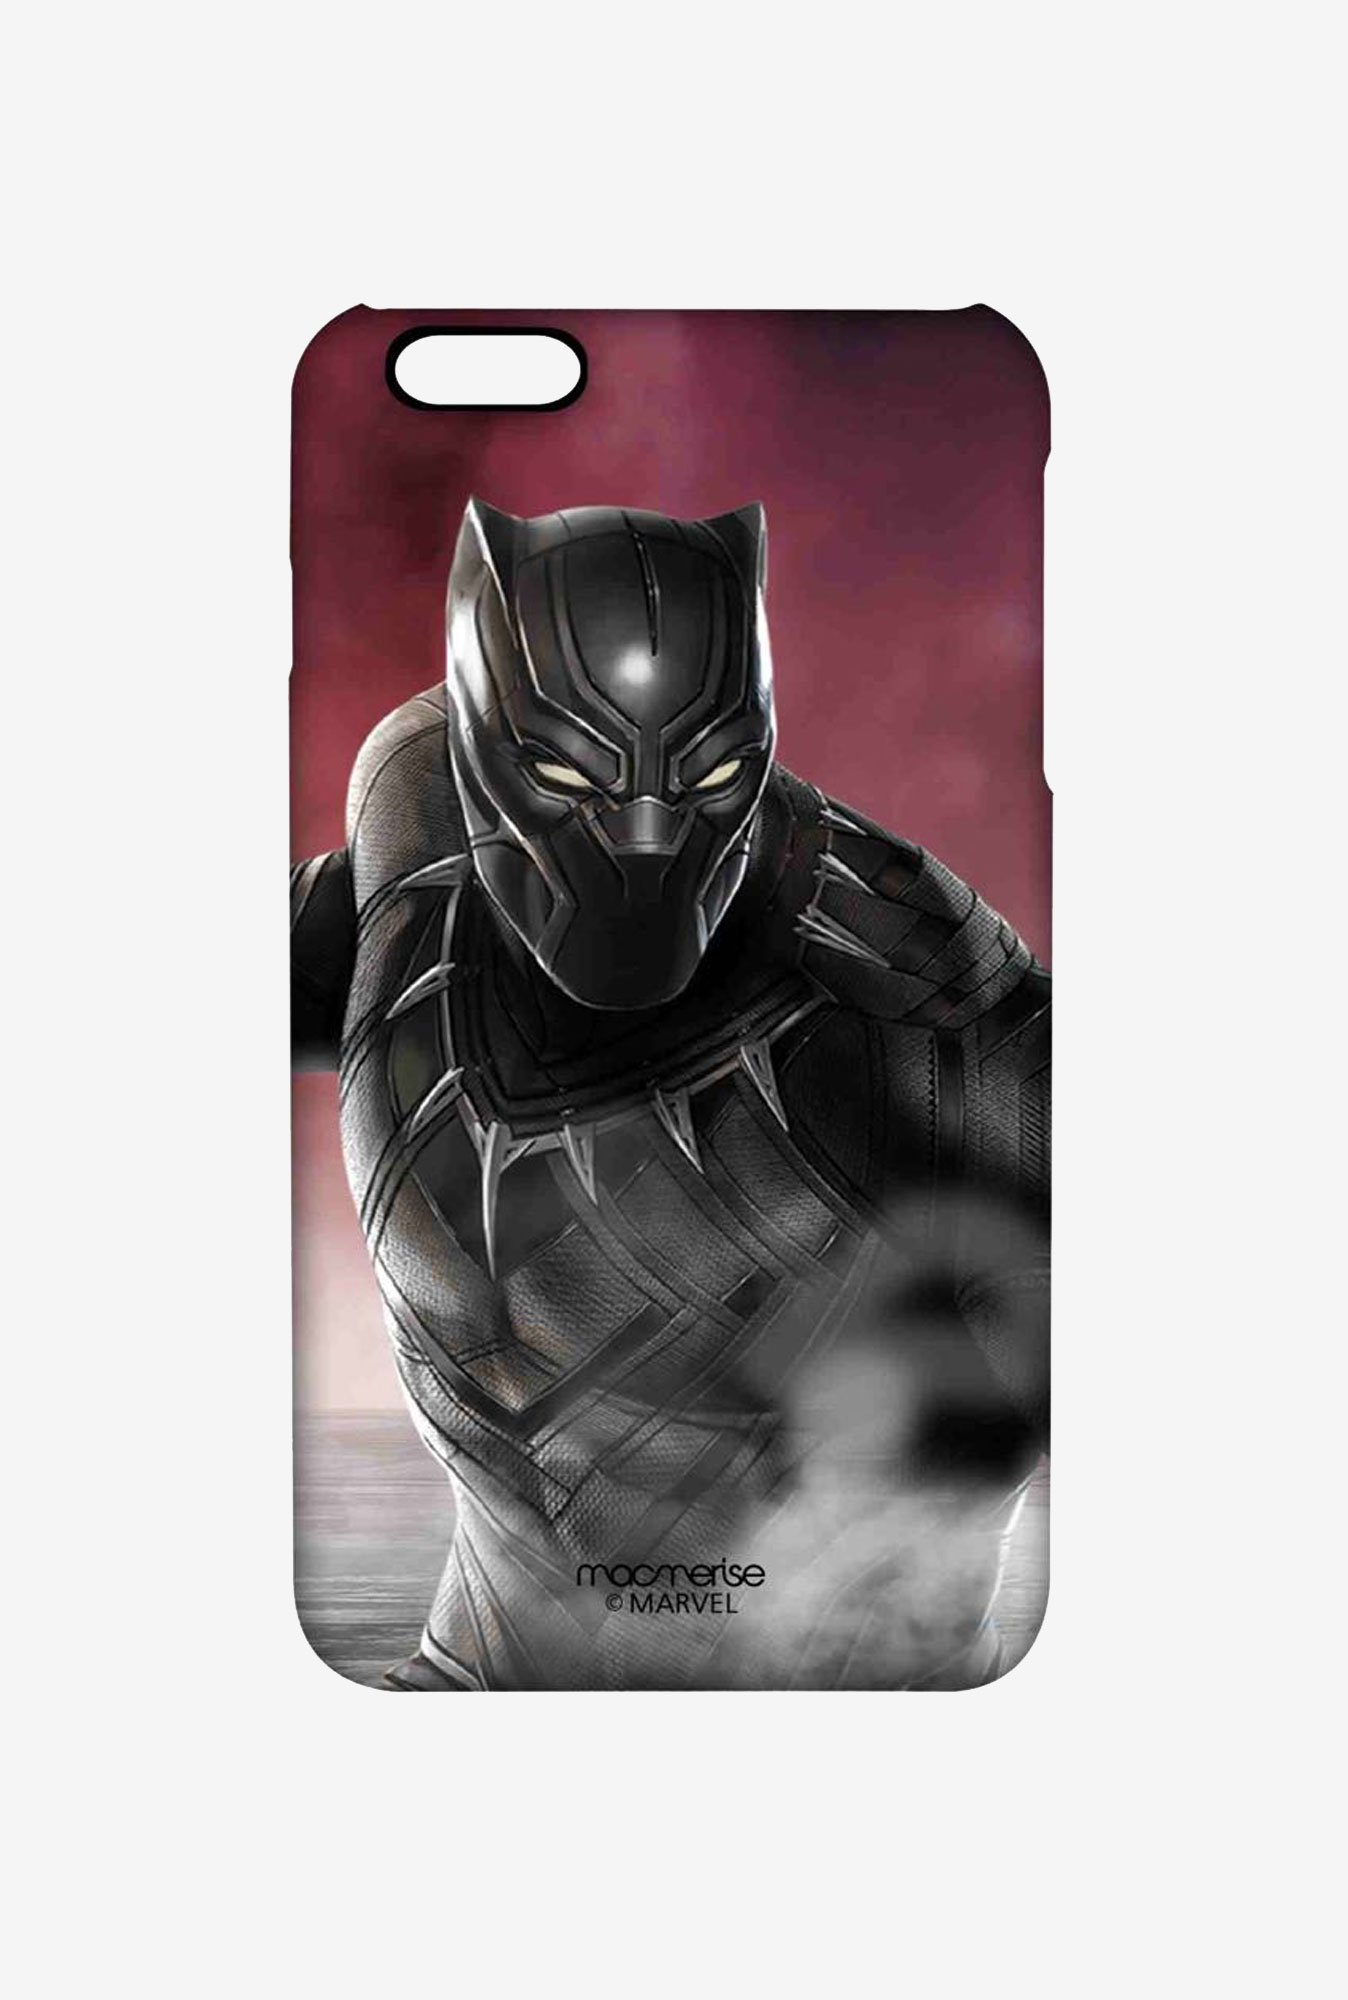 Macmerise Team Red Black Panther Pro Case for iPhone 6S Plus